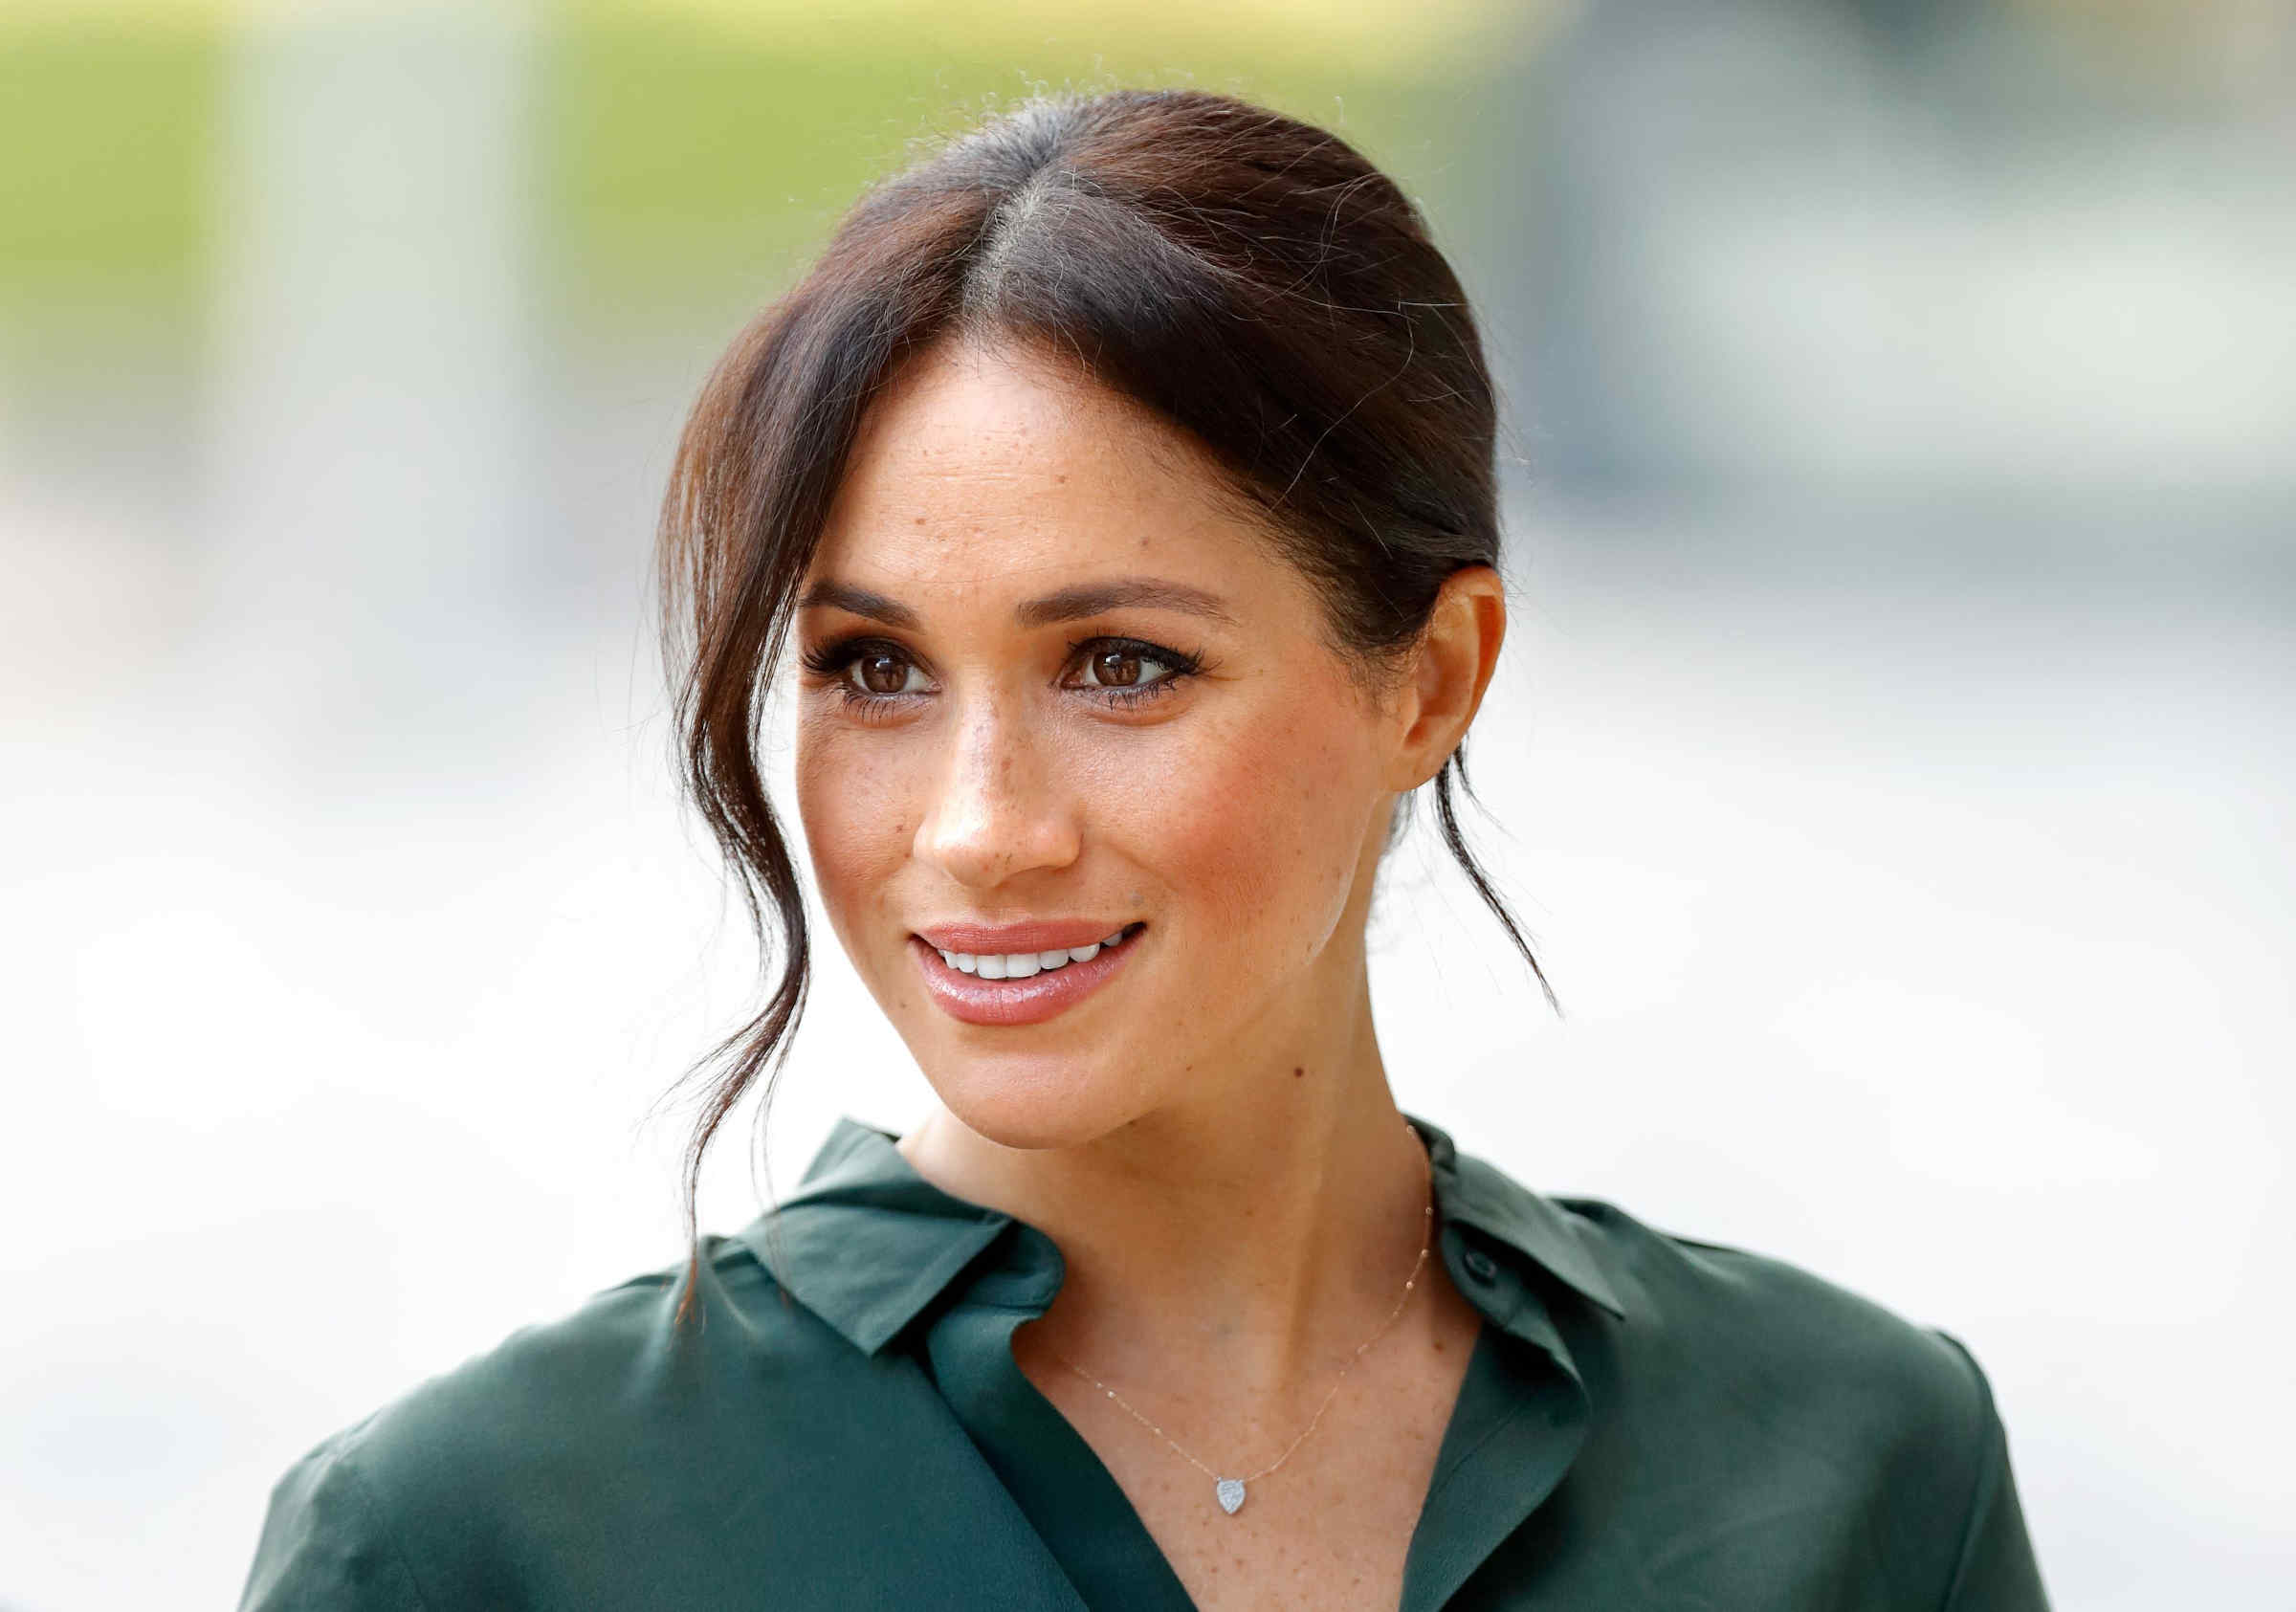 meghan-markle-opens-up-about-being-the-most-trolled-person-in-the-world-it-was-almost-unsurvivable